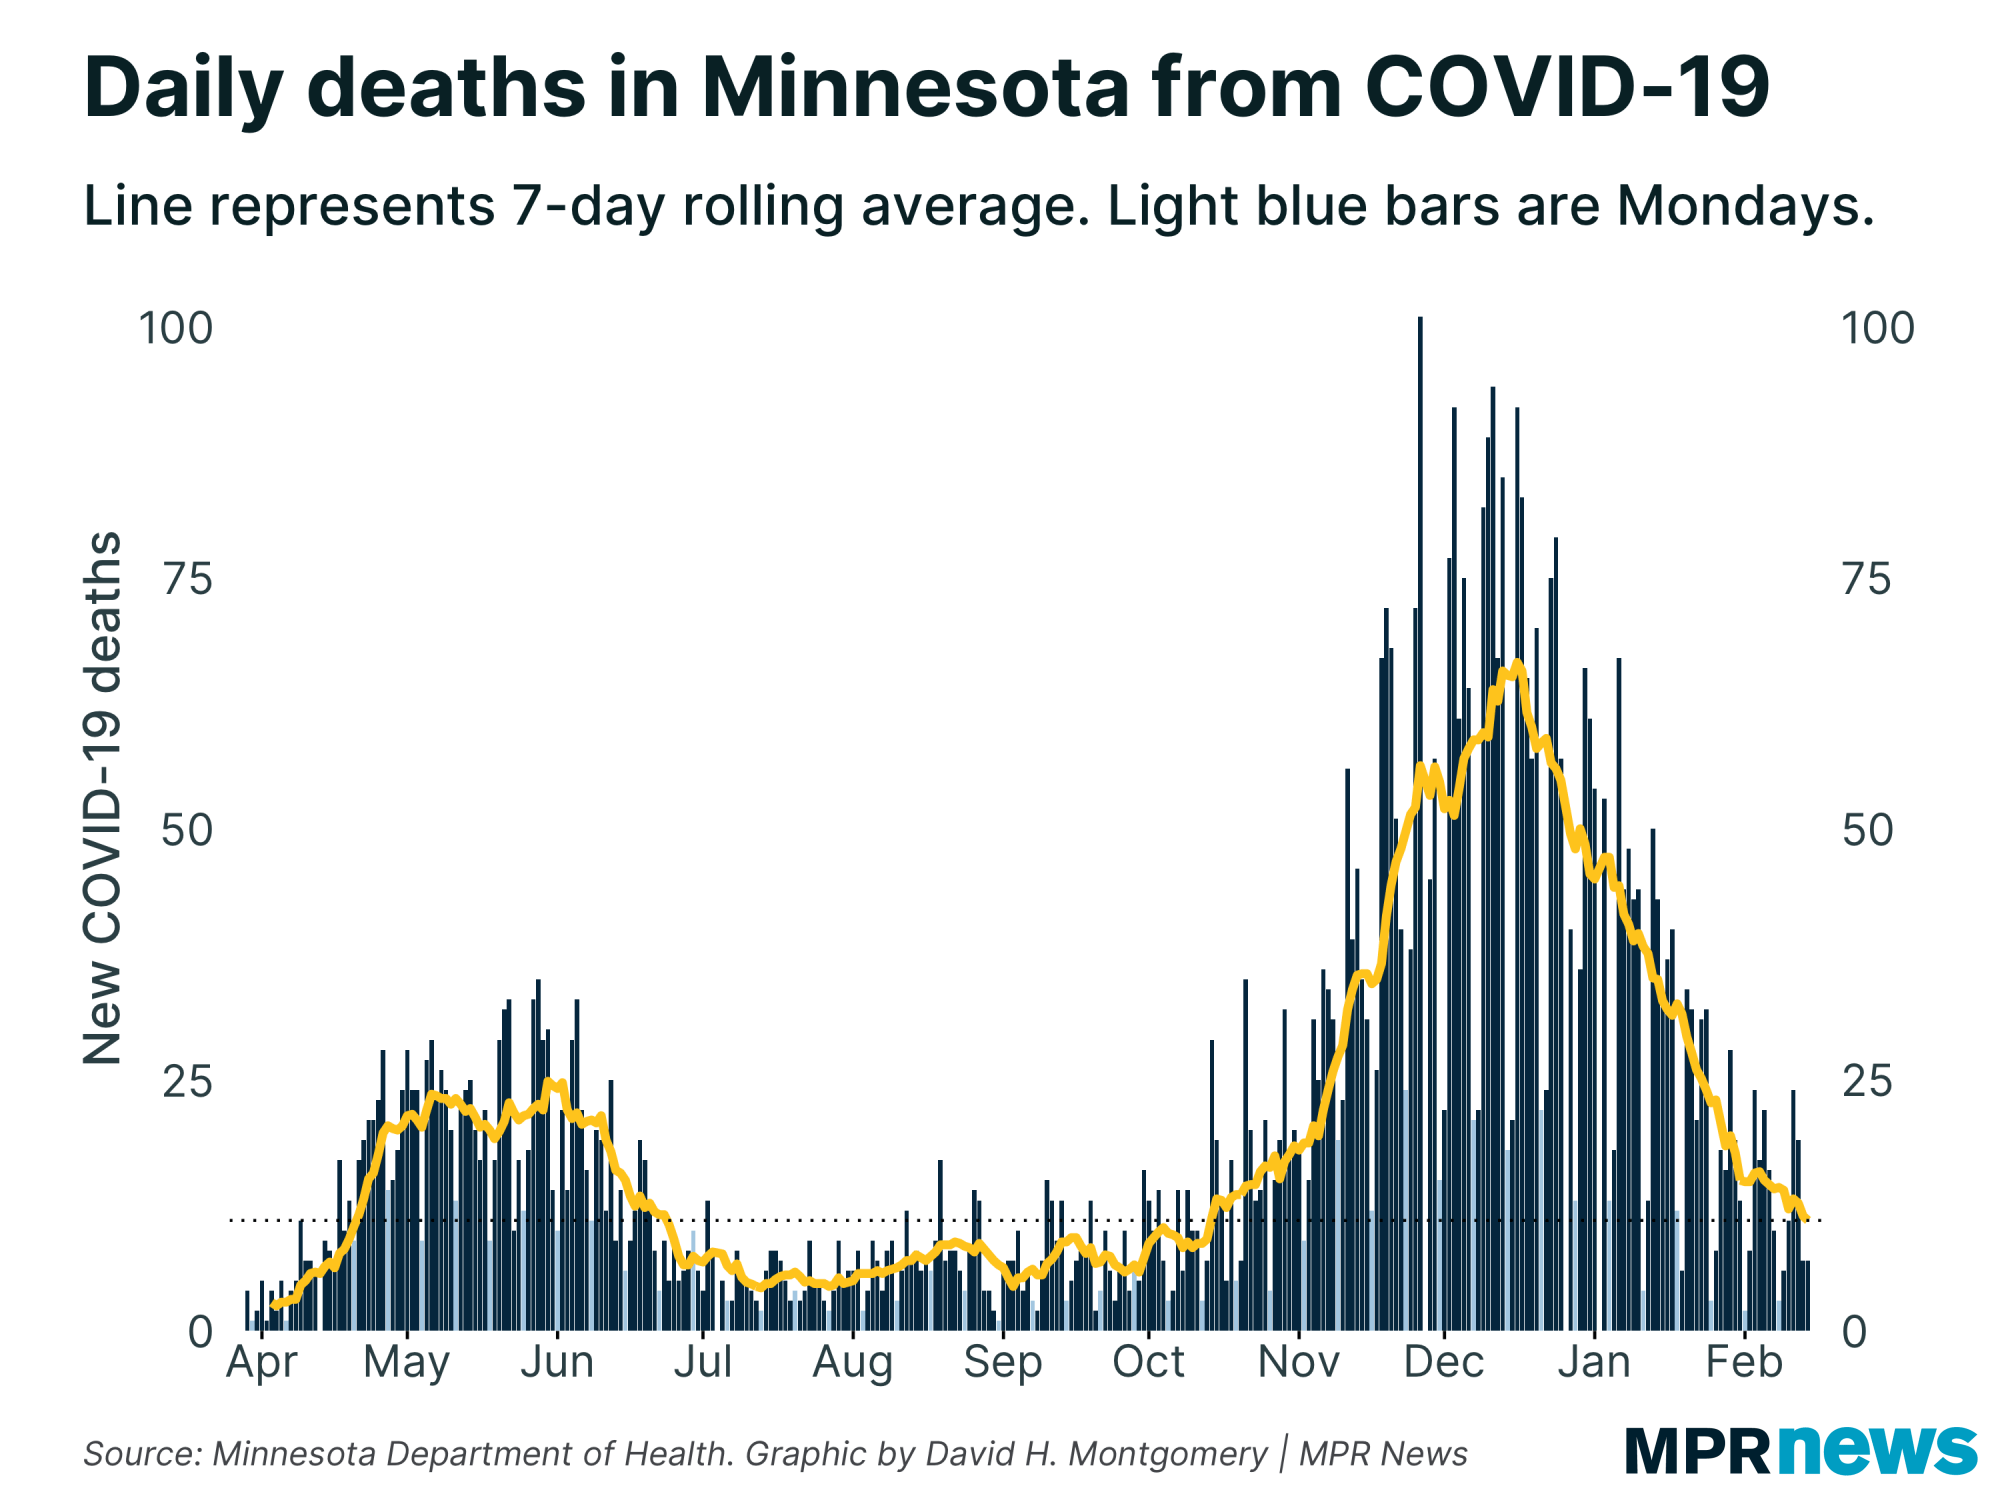 New COVID-19 related deaths reported in Minnesota every day